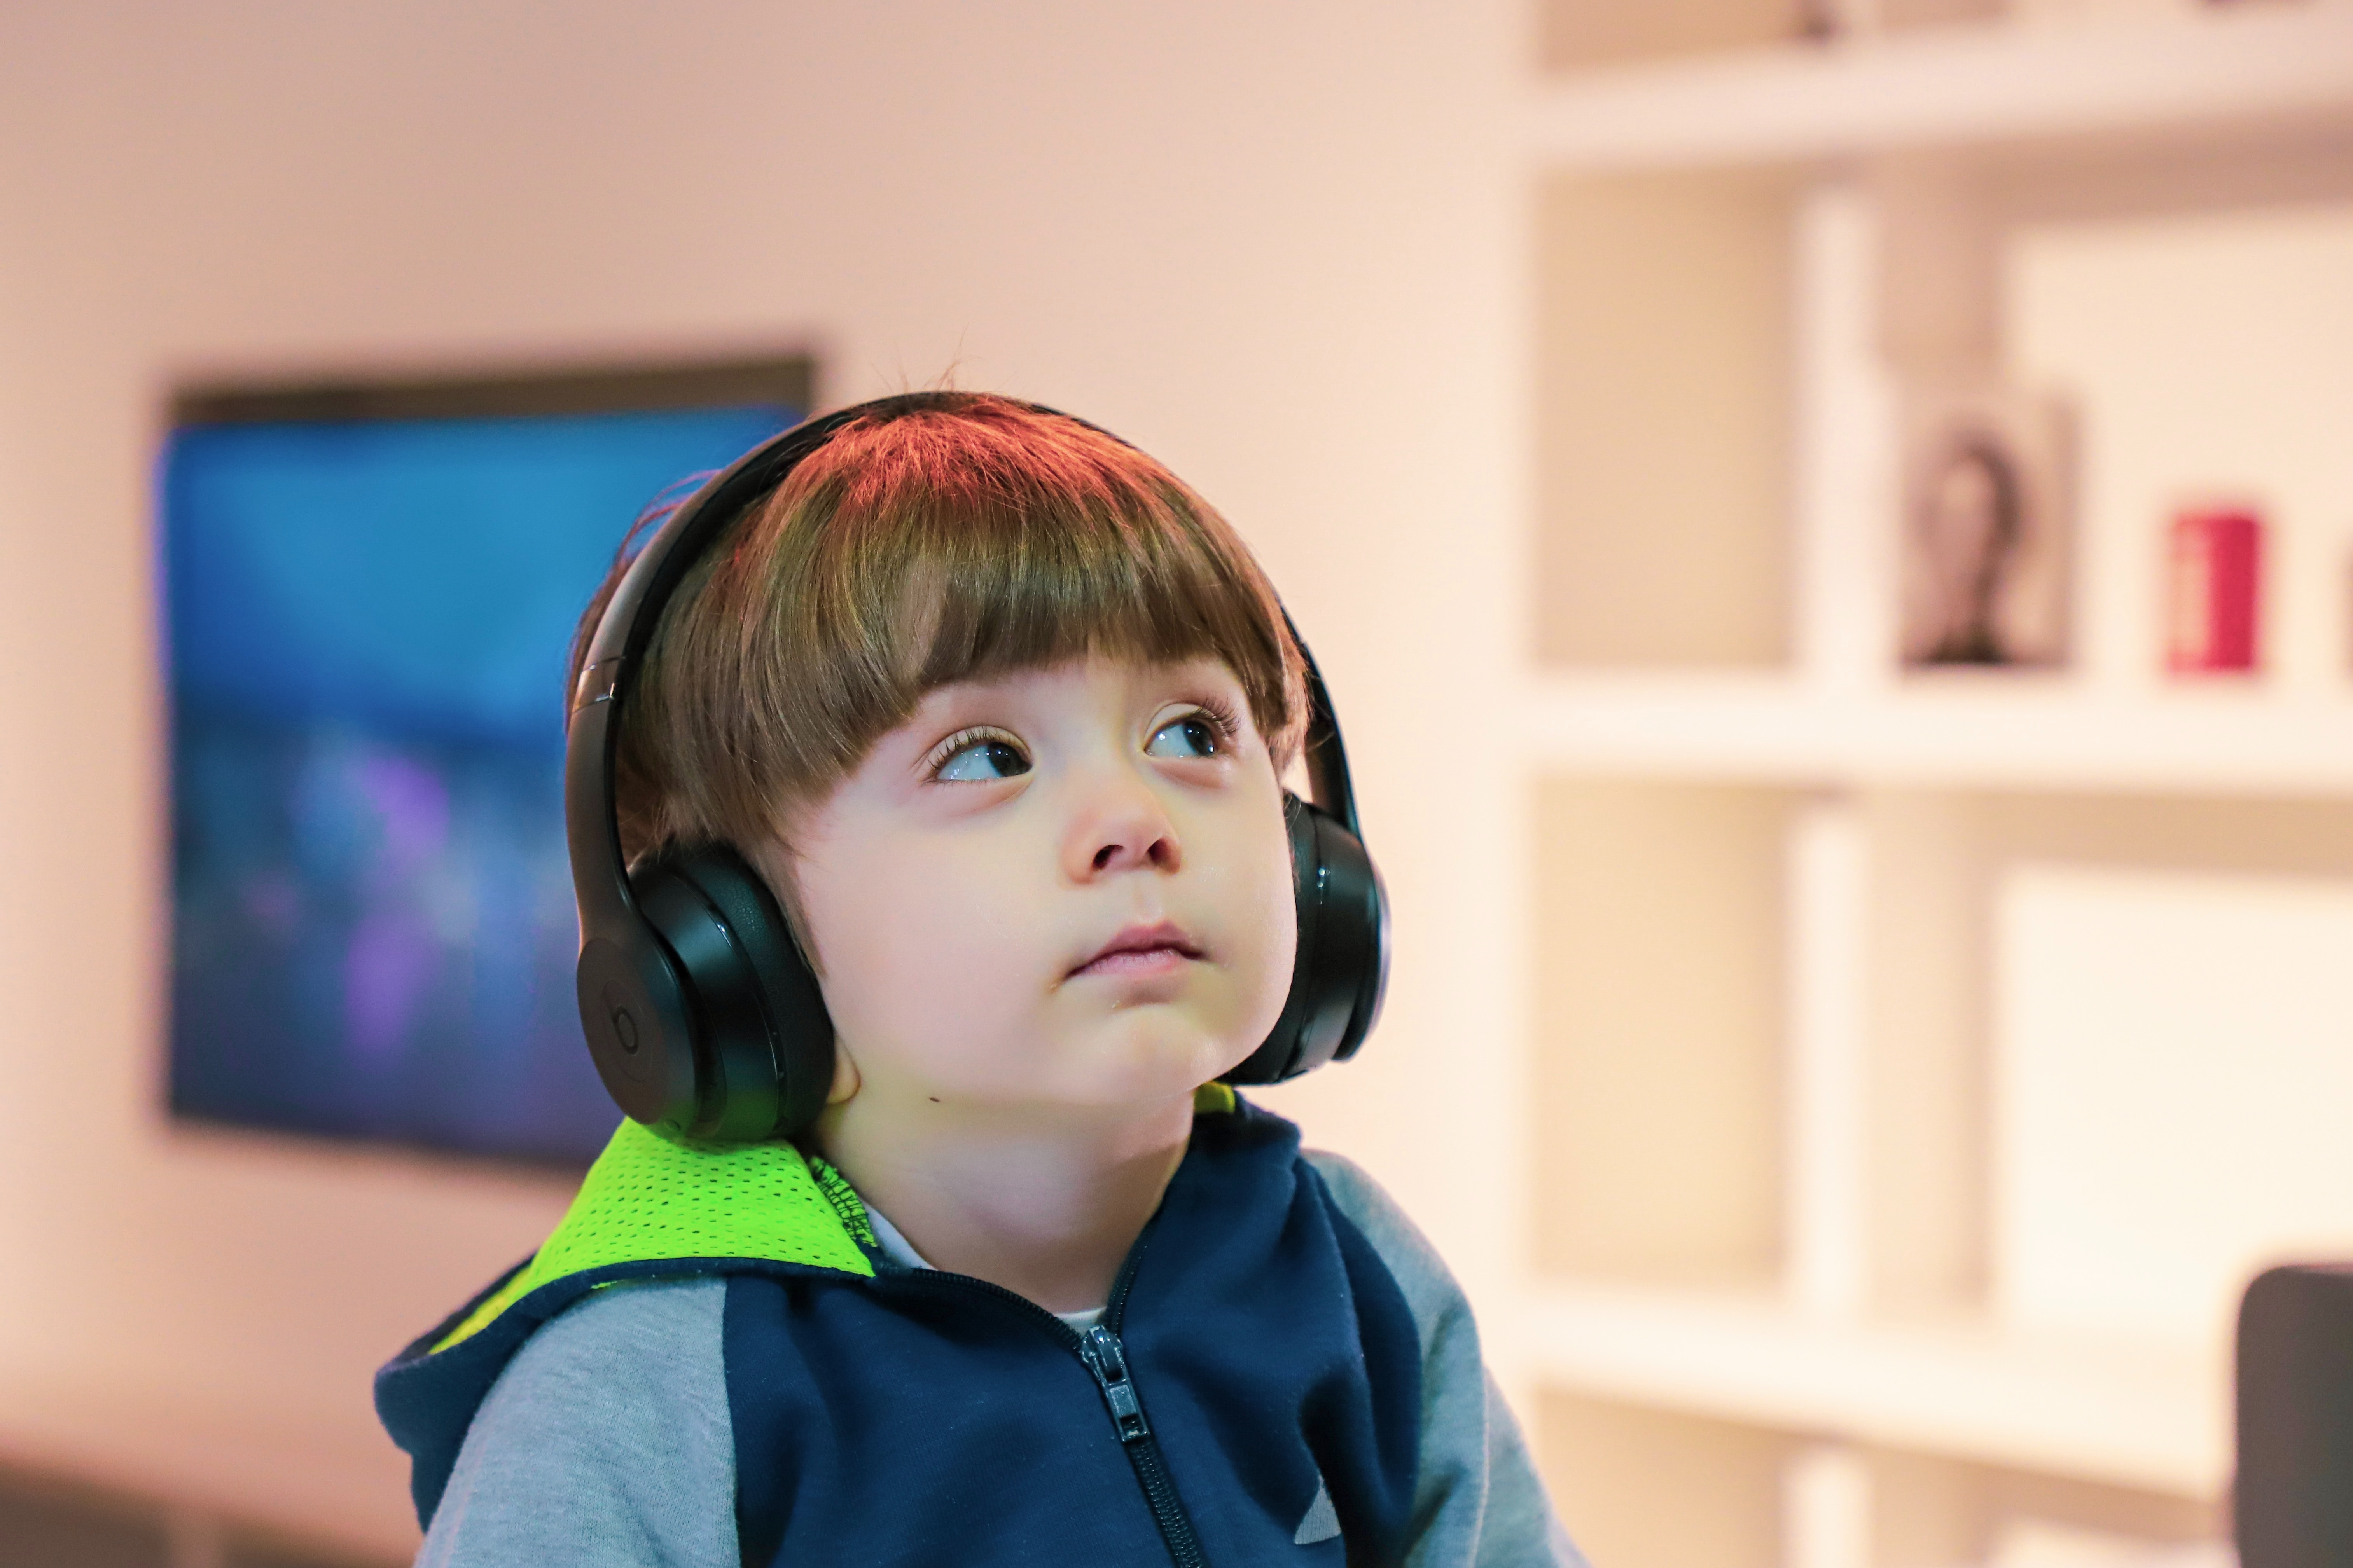 Screen time in early childhood: what does research show? During Corona pandemic,the number of daily users increased from 19 million to 23.5 million.